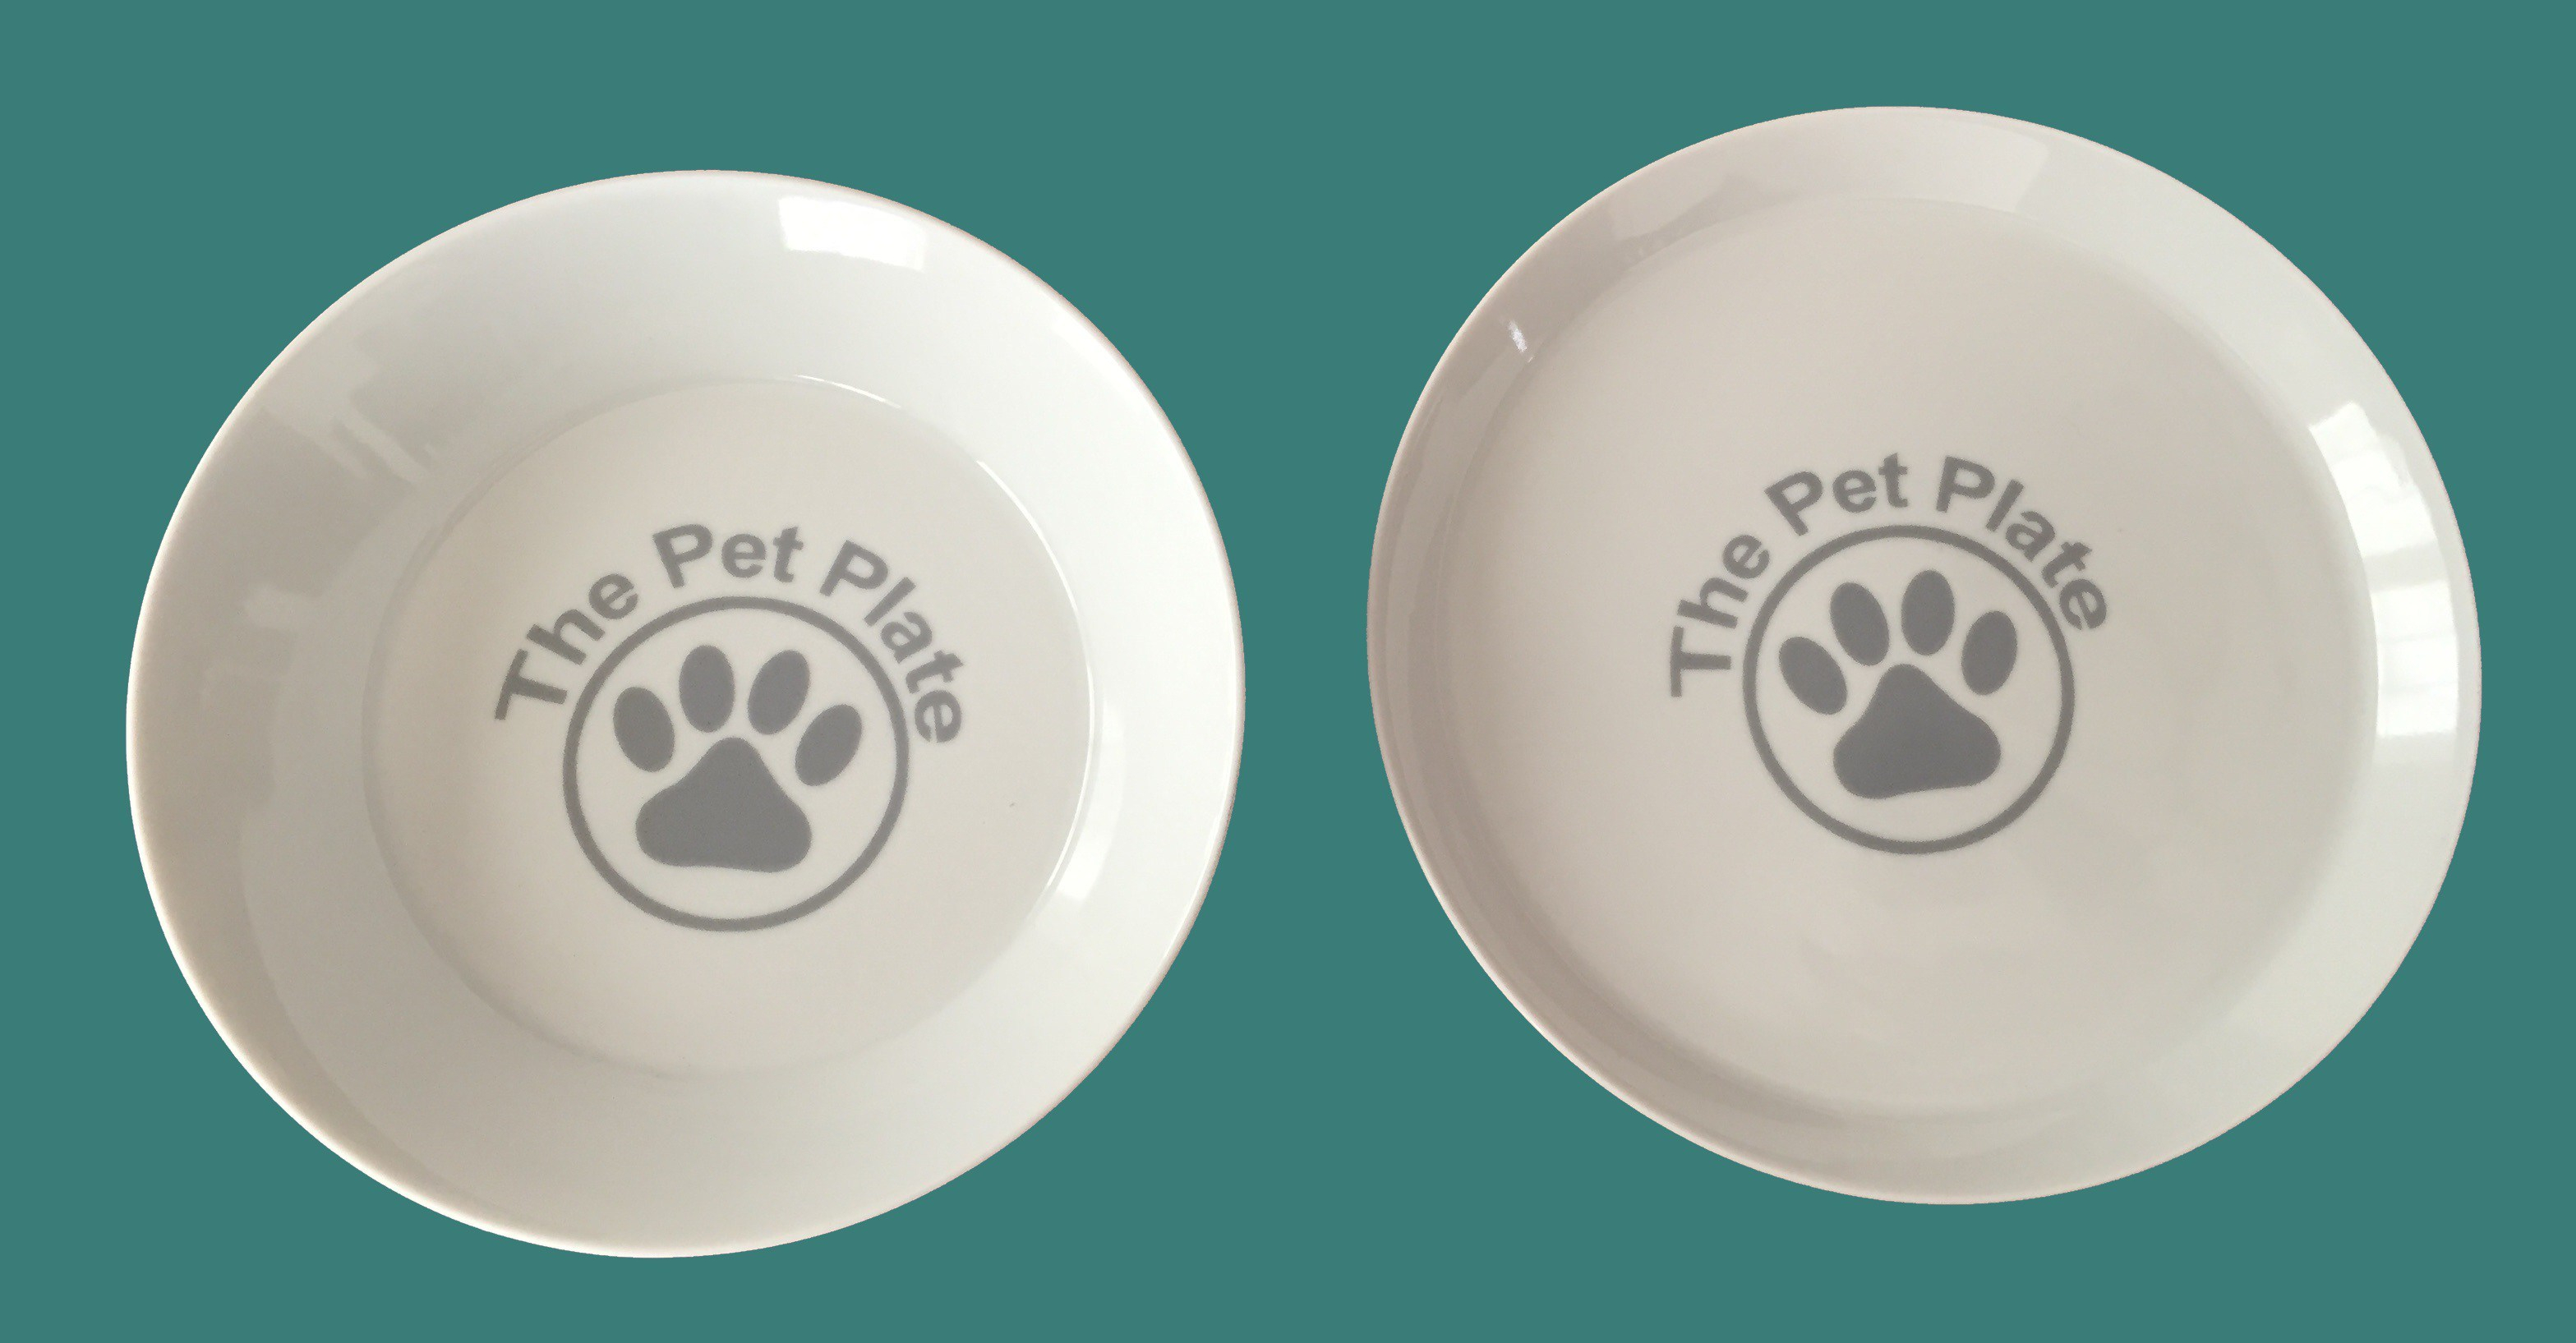 The Pet Plate Feeding System blue